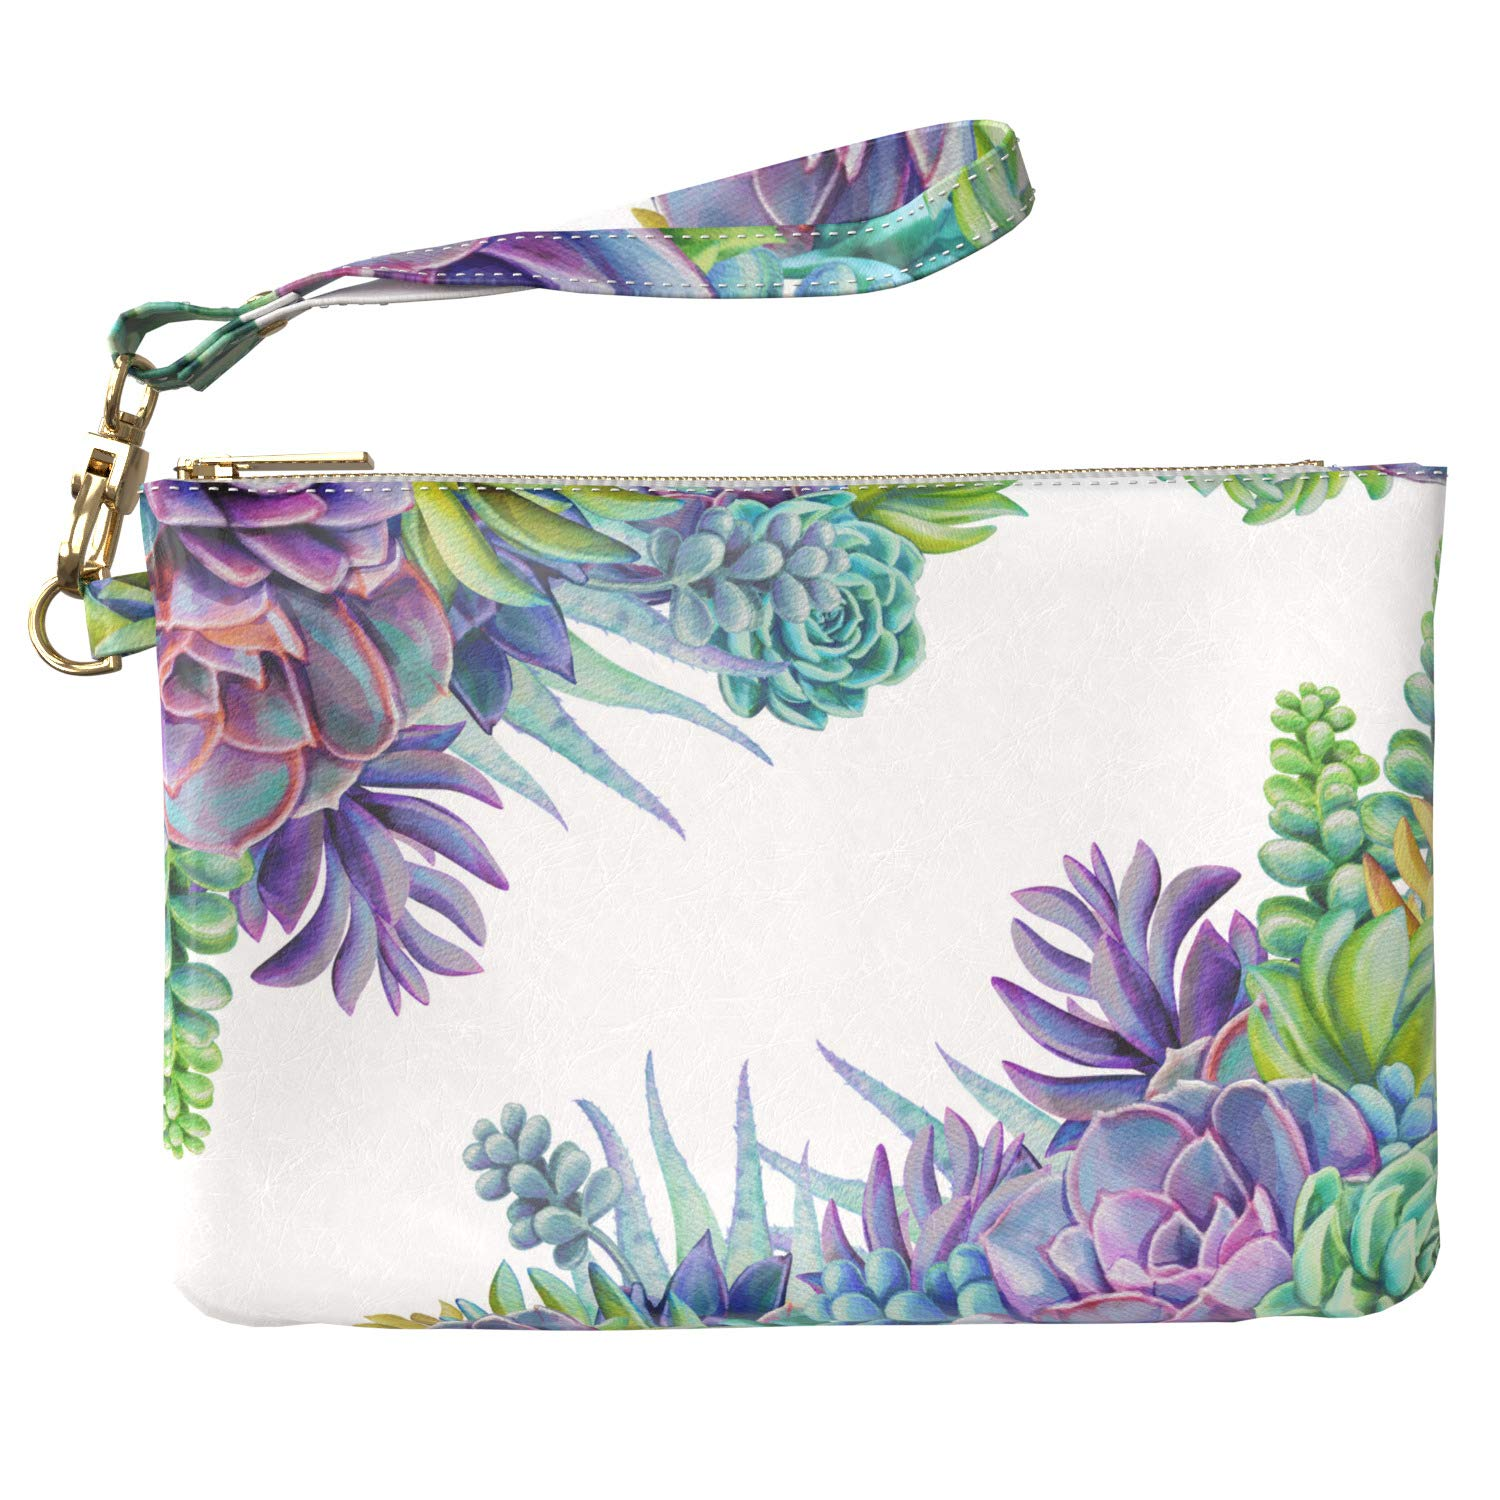 Cavka Makeup Bag 9.5 x 6 inch Flowers Floral New Cosmetic Print PU Leather Toiletry Zipper Travel Case Storage Succulent Stylish Cactus Purse Pouch Strap Accessories Portable Organizer Design Purple